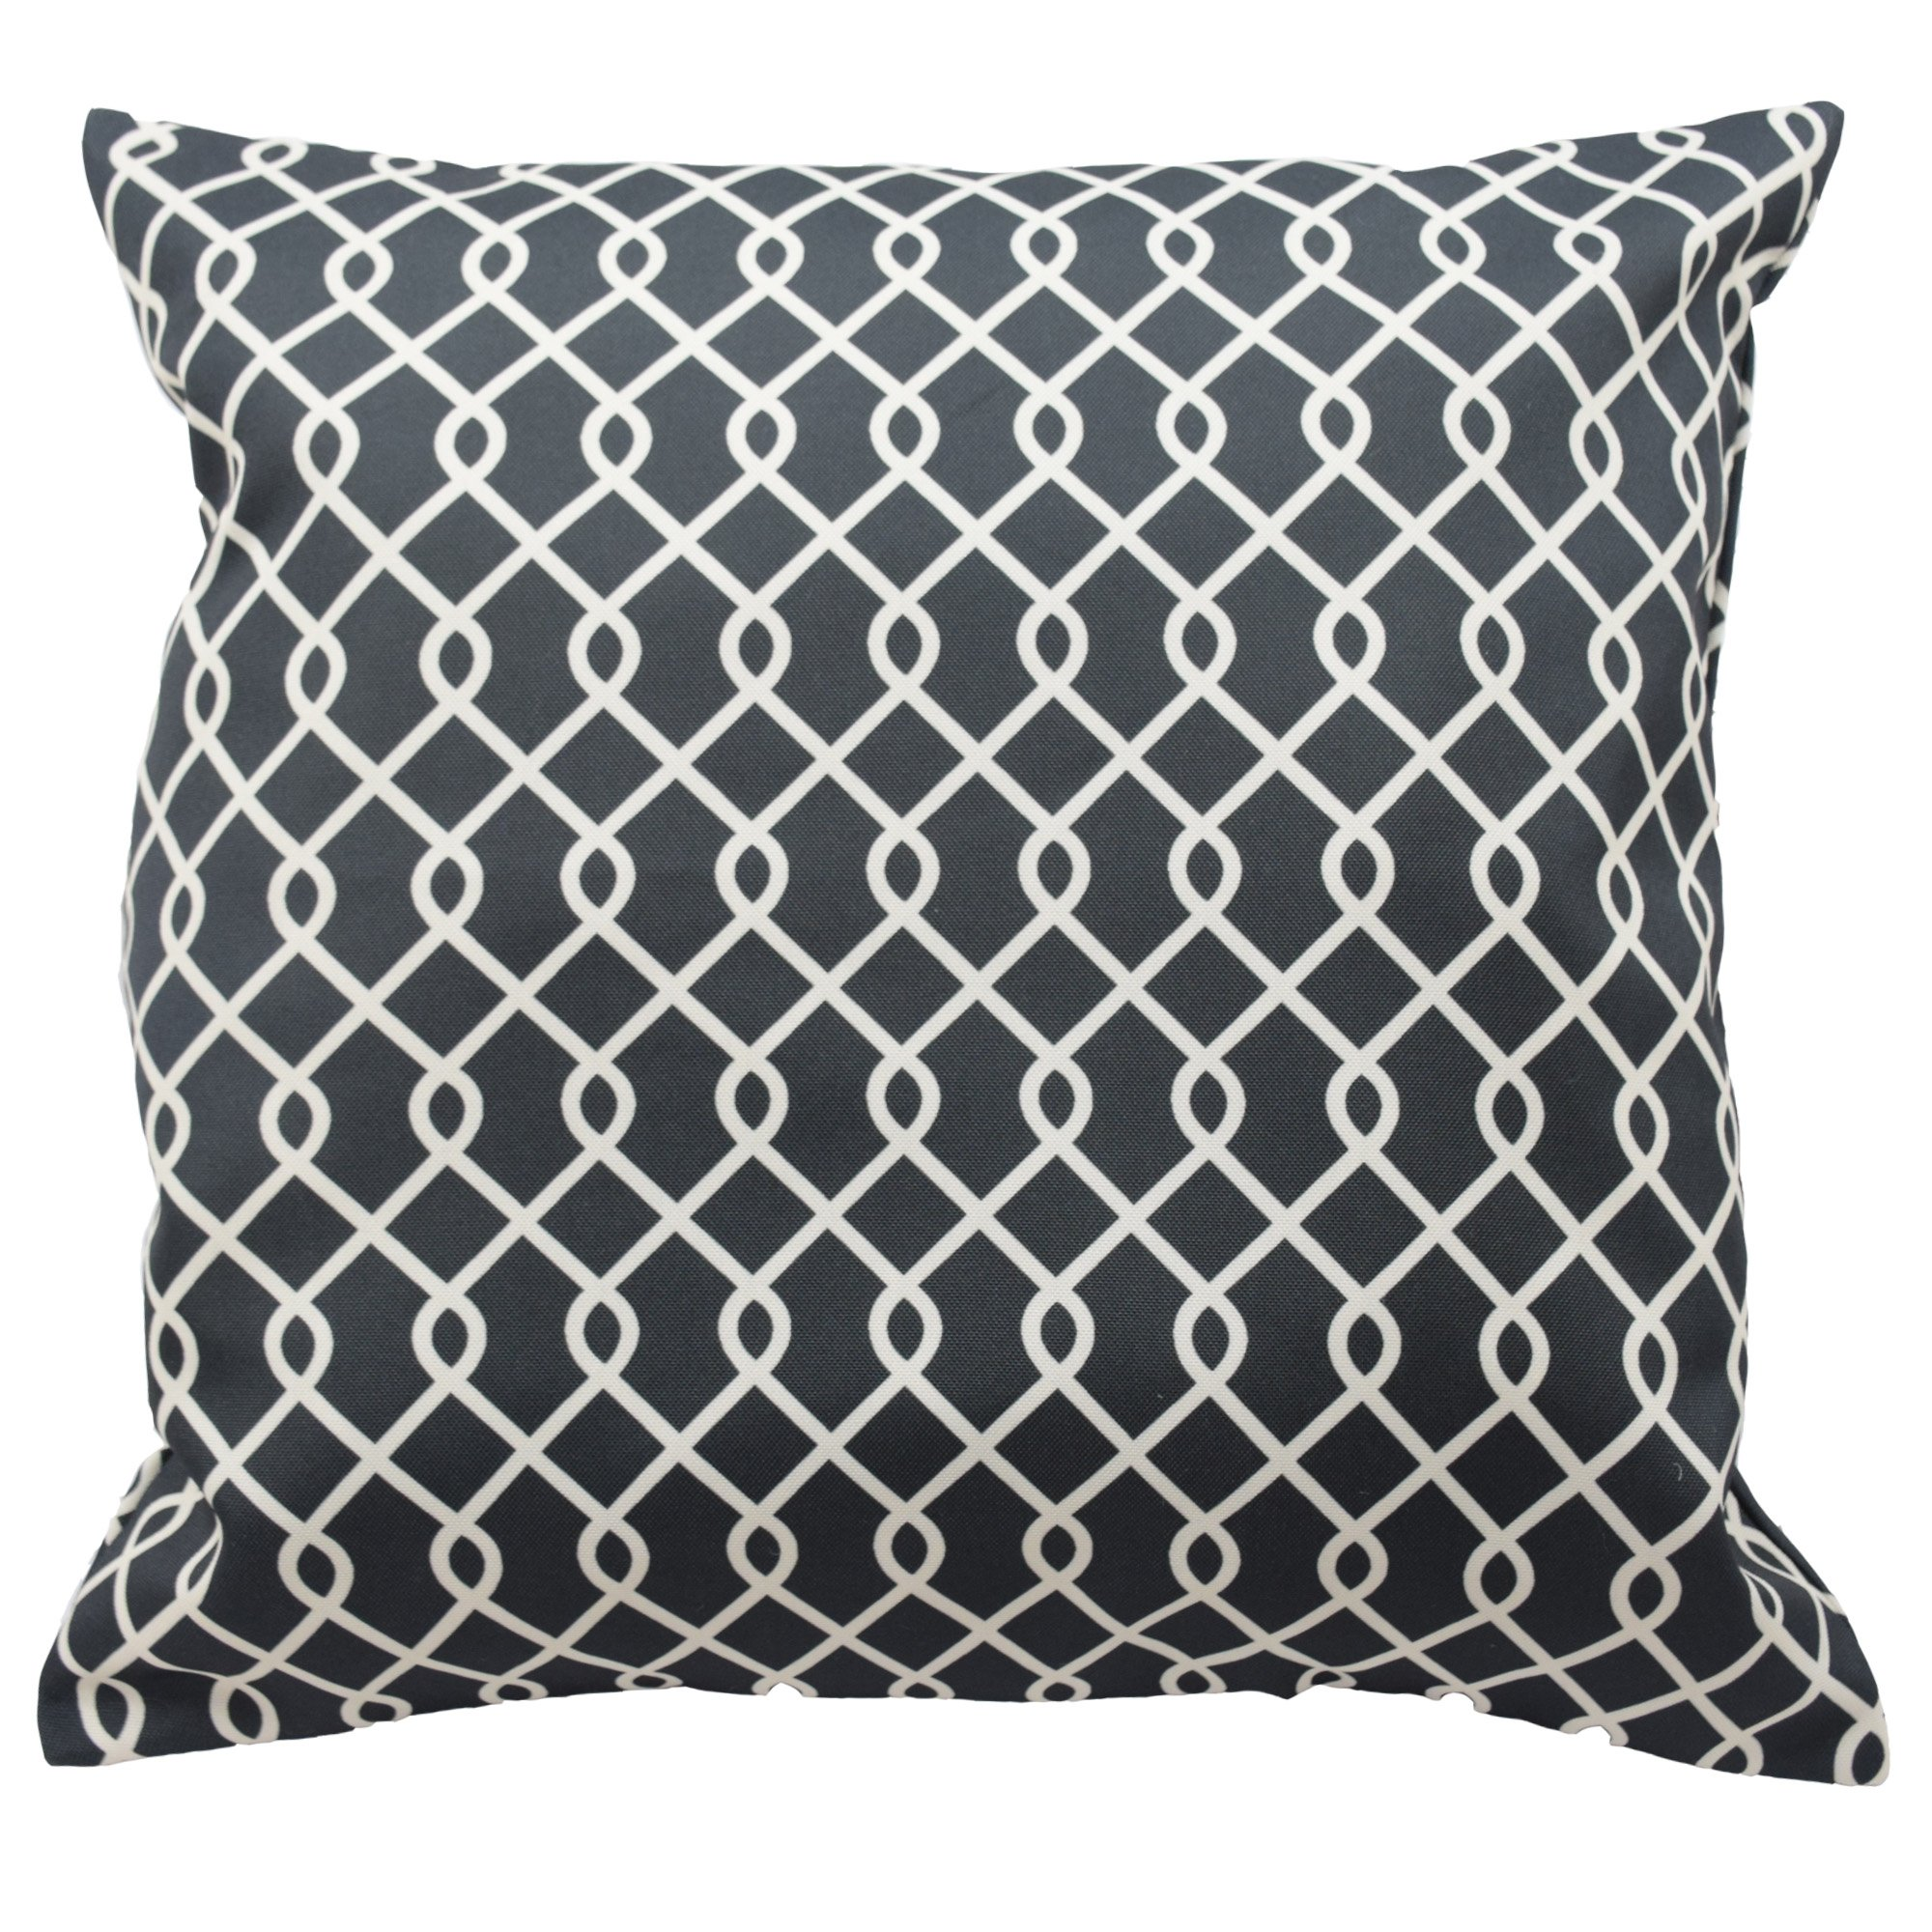 Traditions By Waverly 14311018X018OYX Ellis 18-Inch by 18-Inch Decorative Pillow Set (2 Pack), Onyx